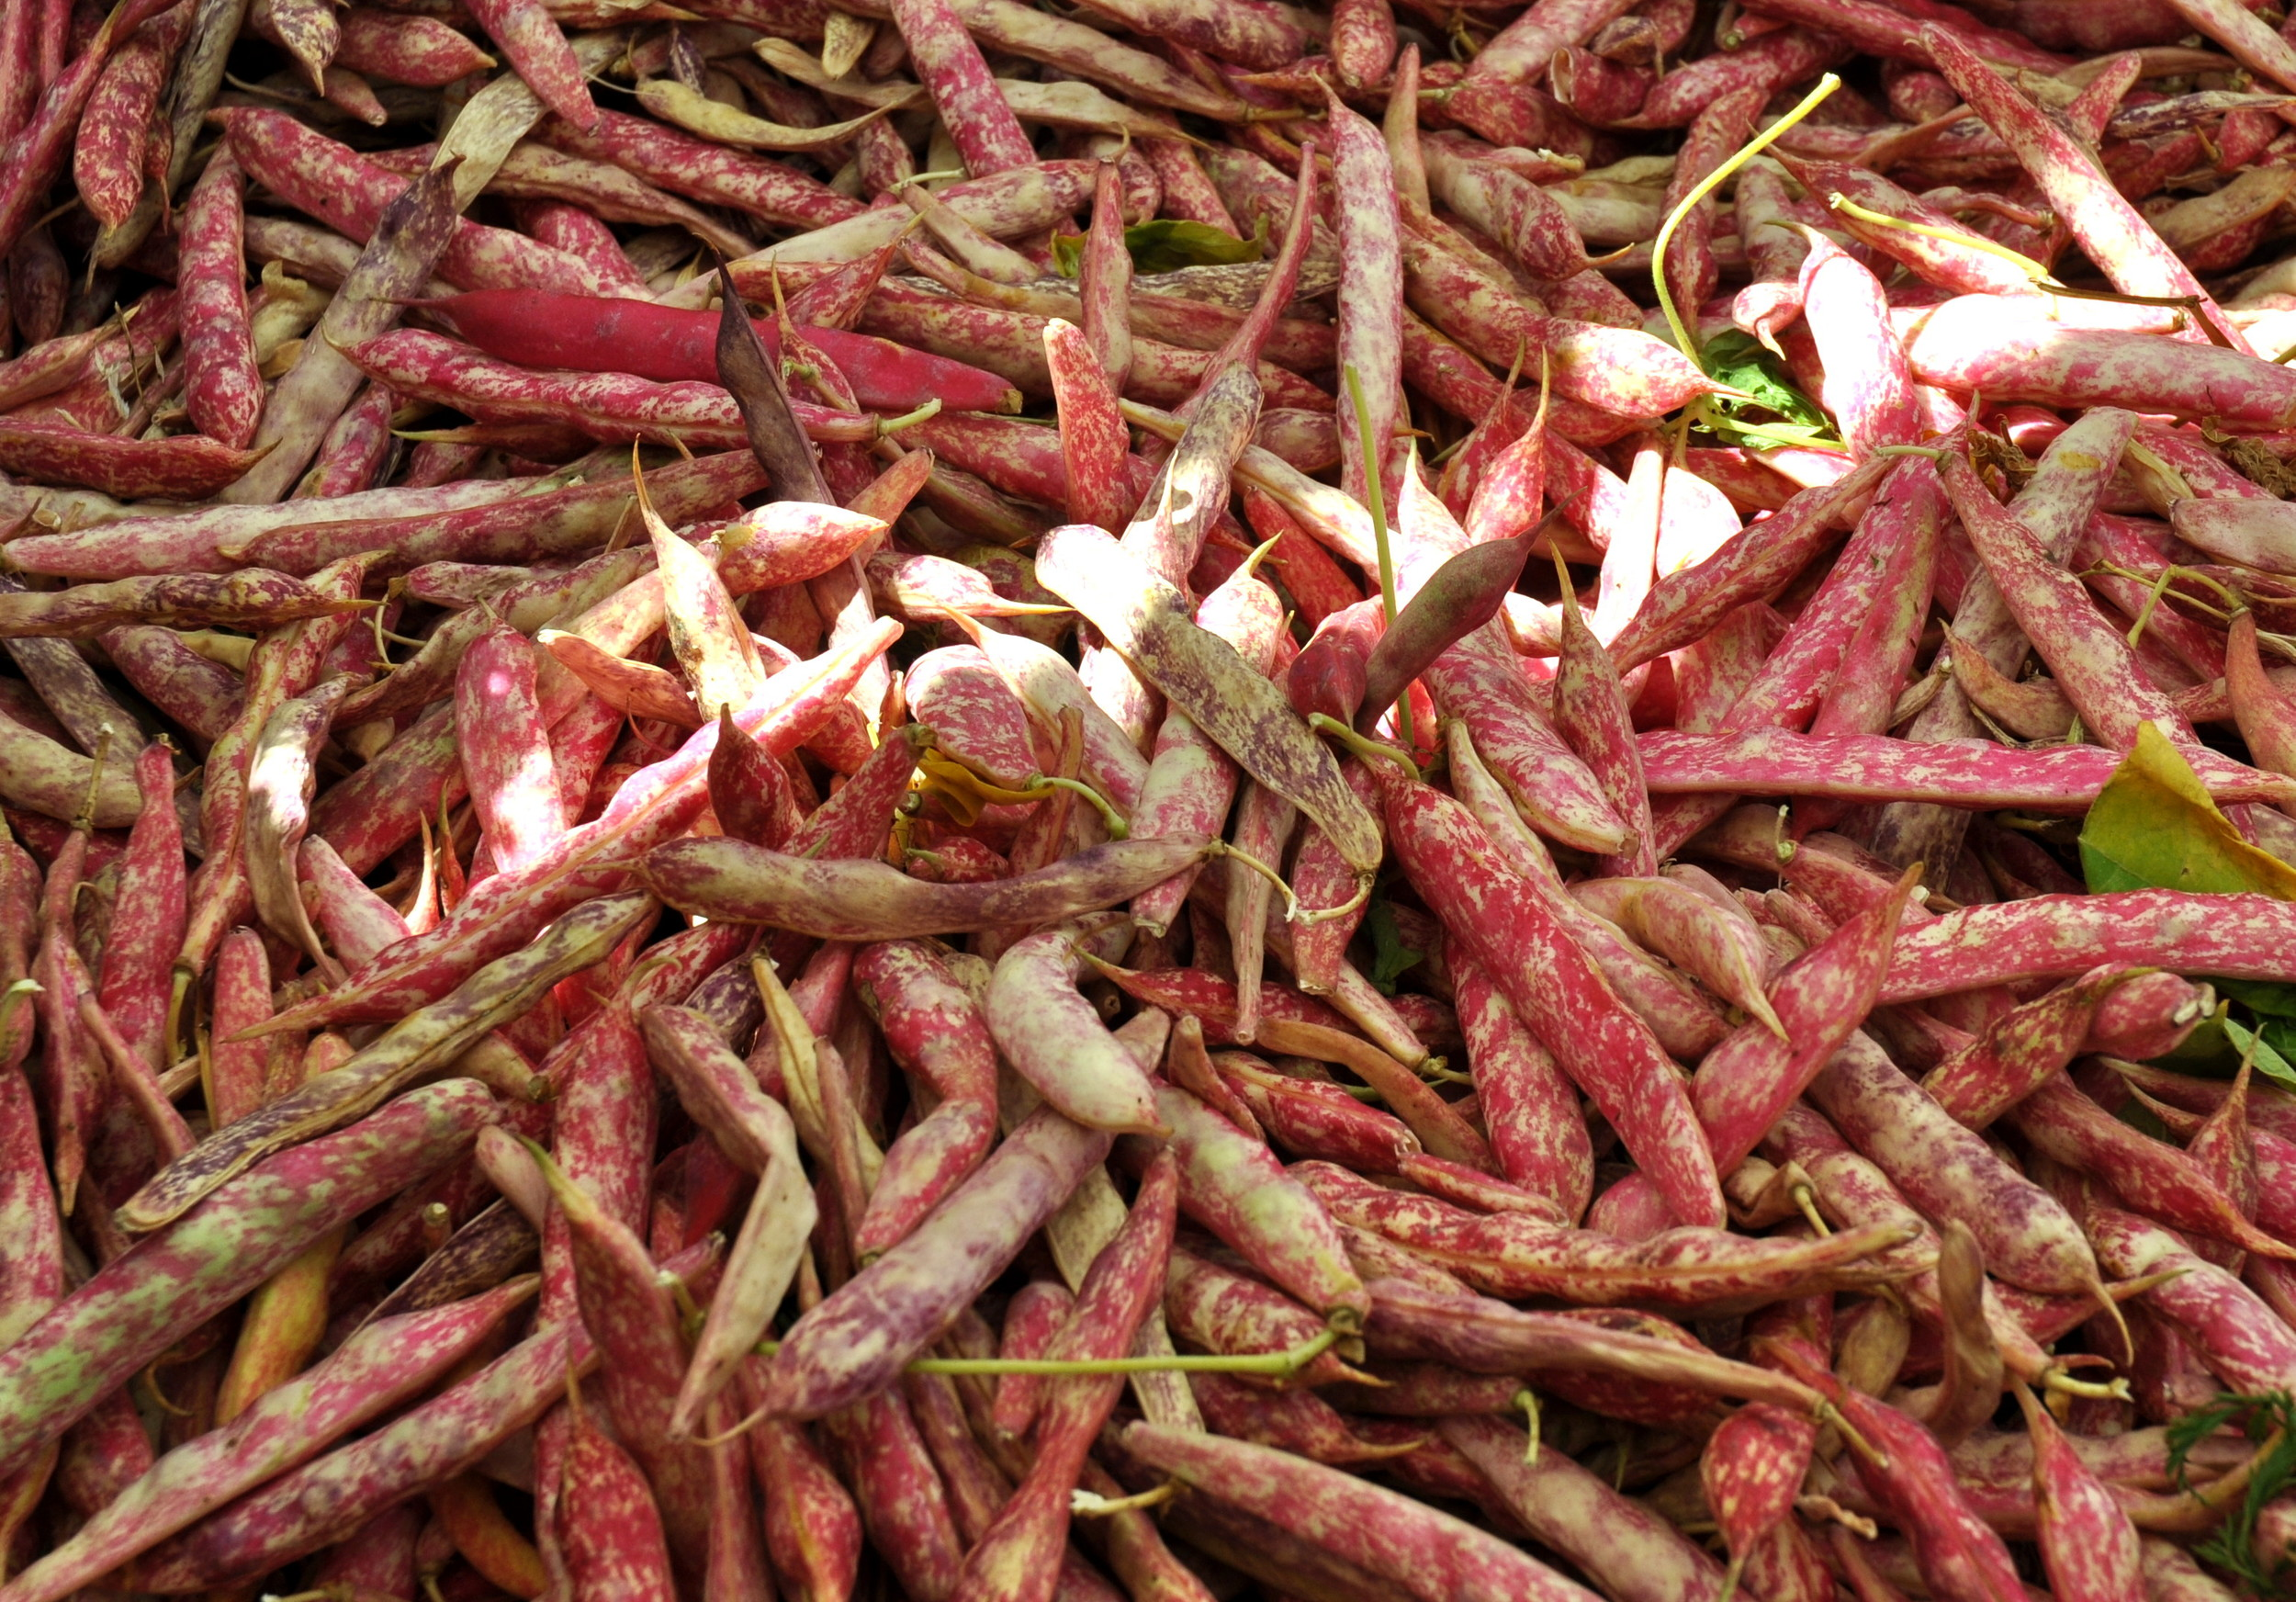 Fresh cranberry beans from Alm Hill Gardens. Photo copyright 2013 by Zachary D. Lyons.